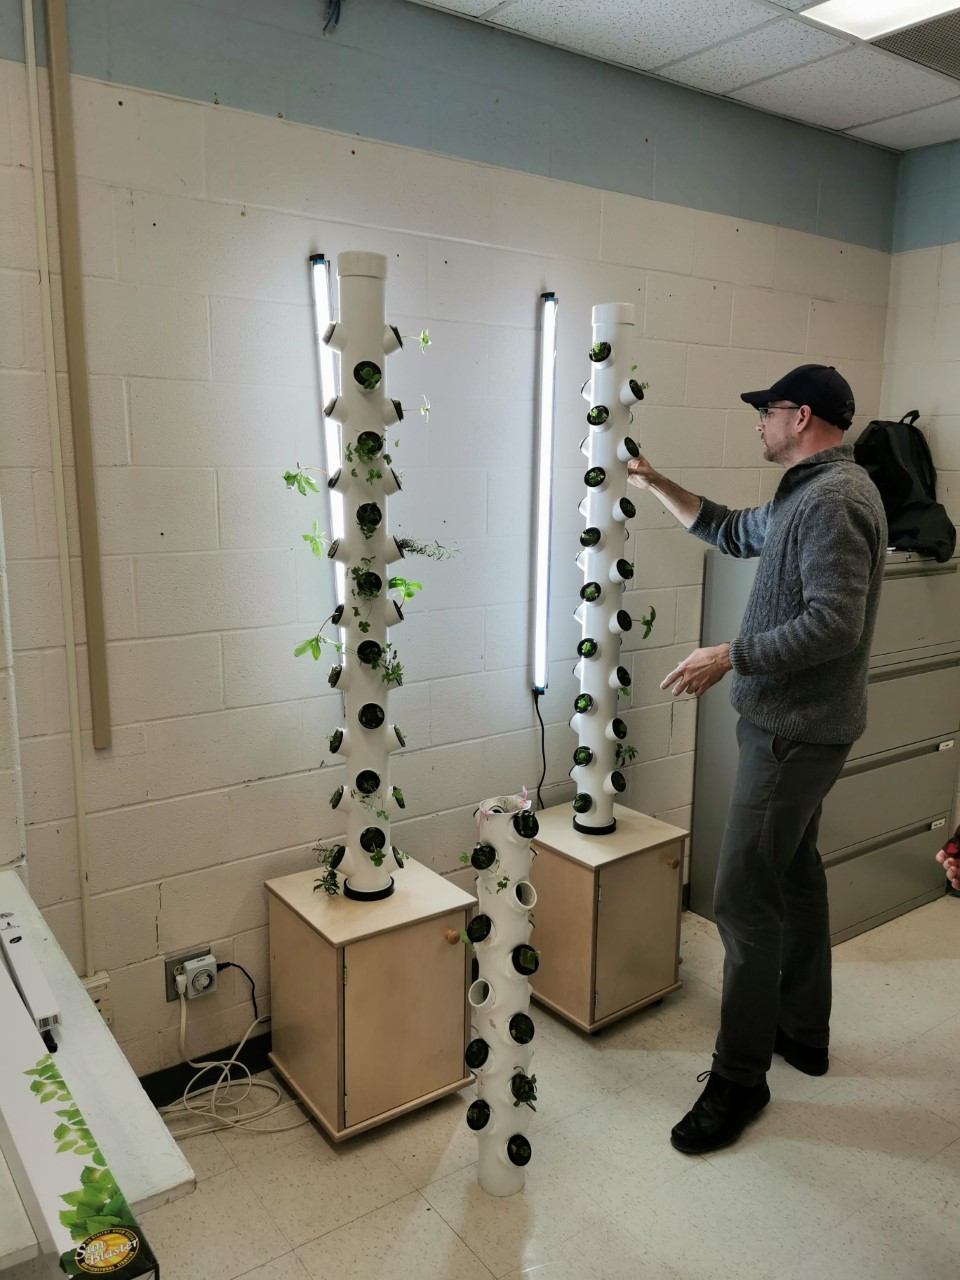 Male adult checking the aeroponic gardening system